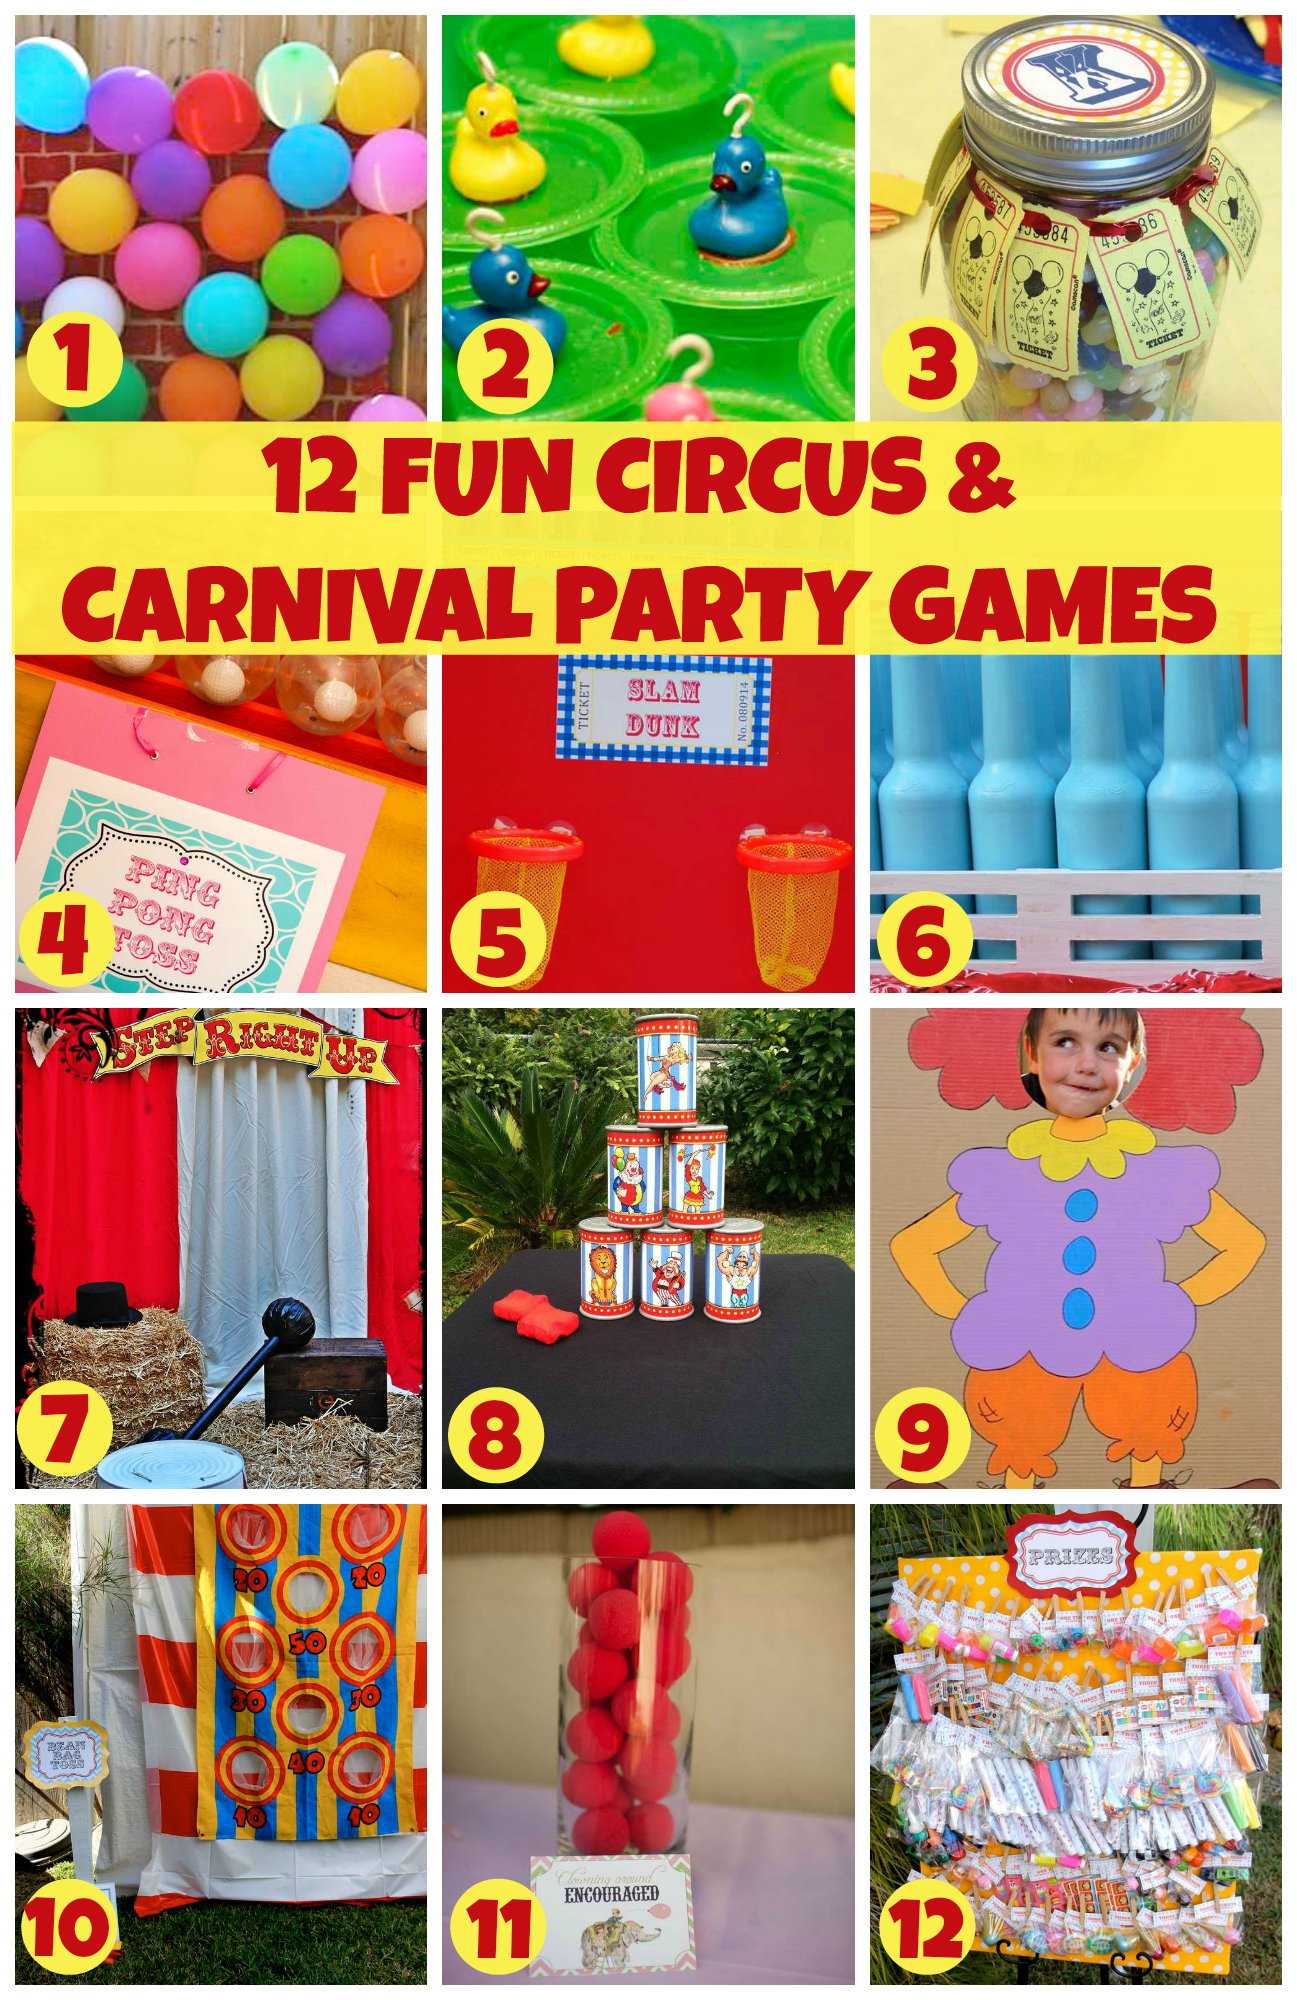 12-Fun-Circus-and-Carnival-Party-Games2